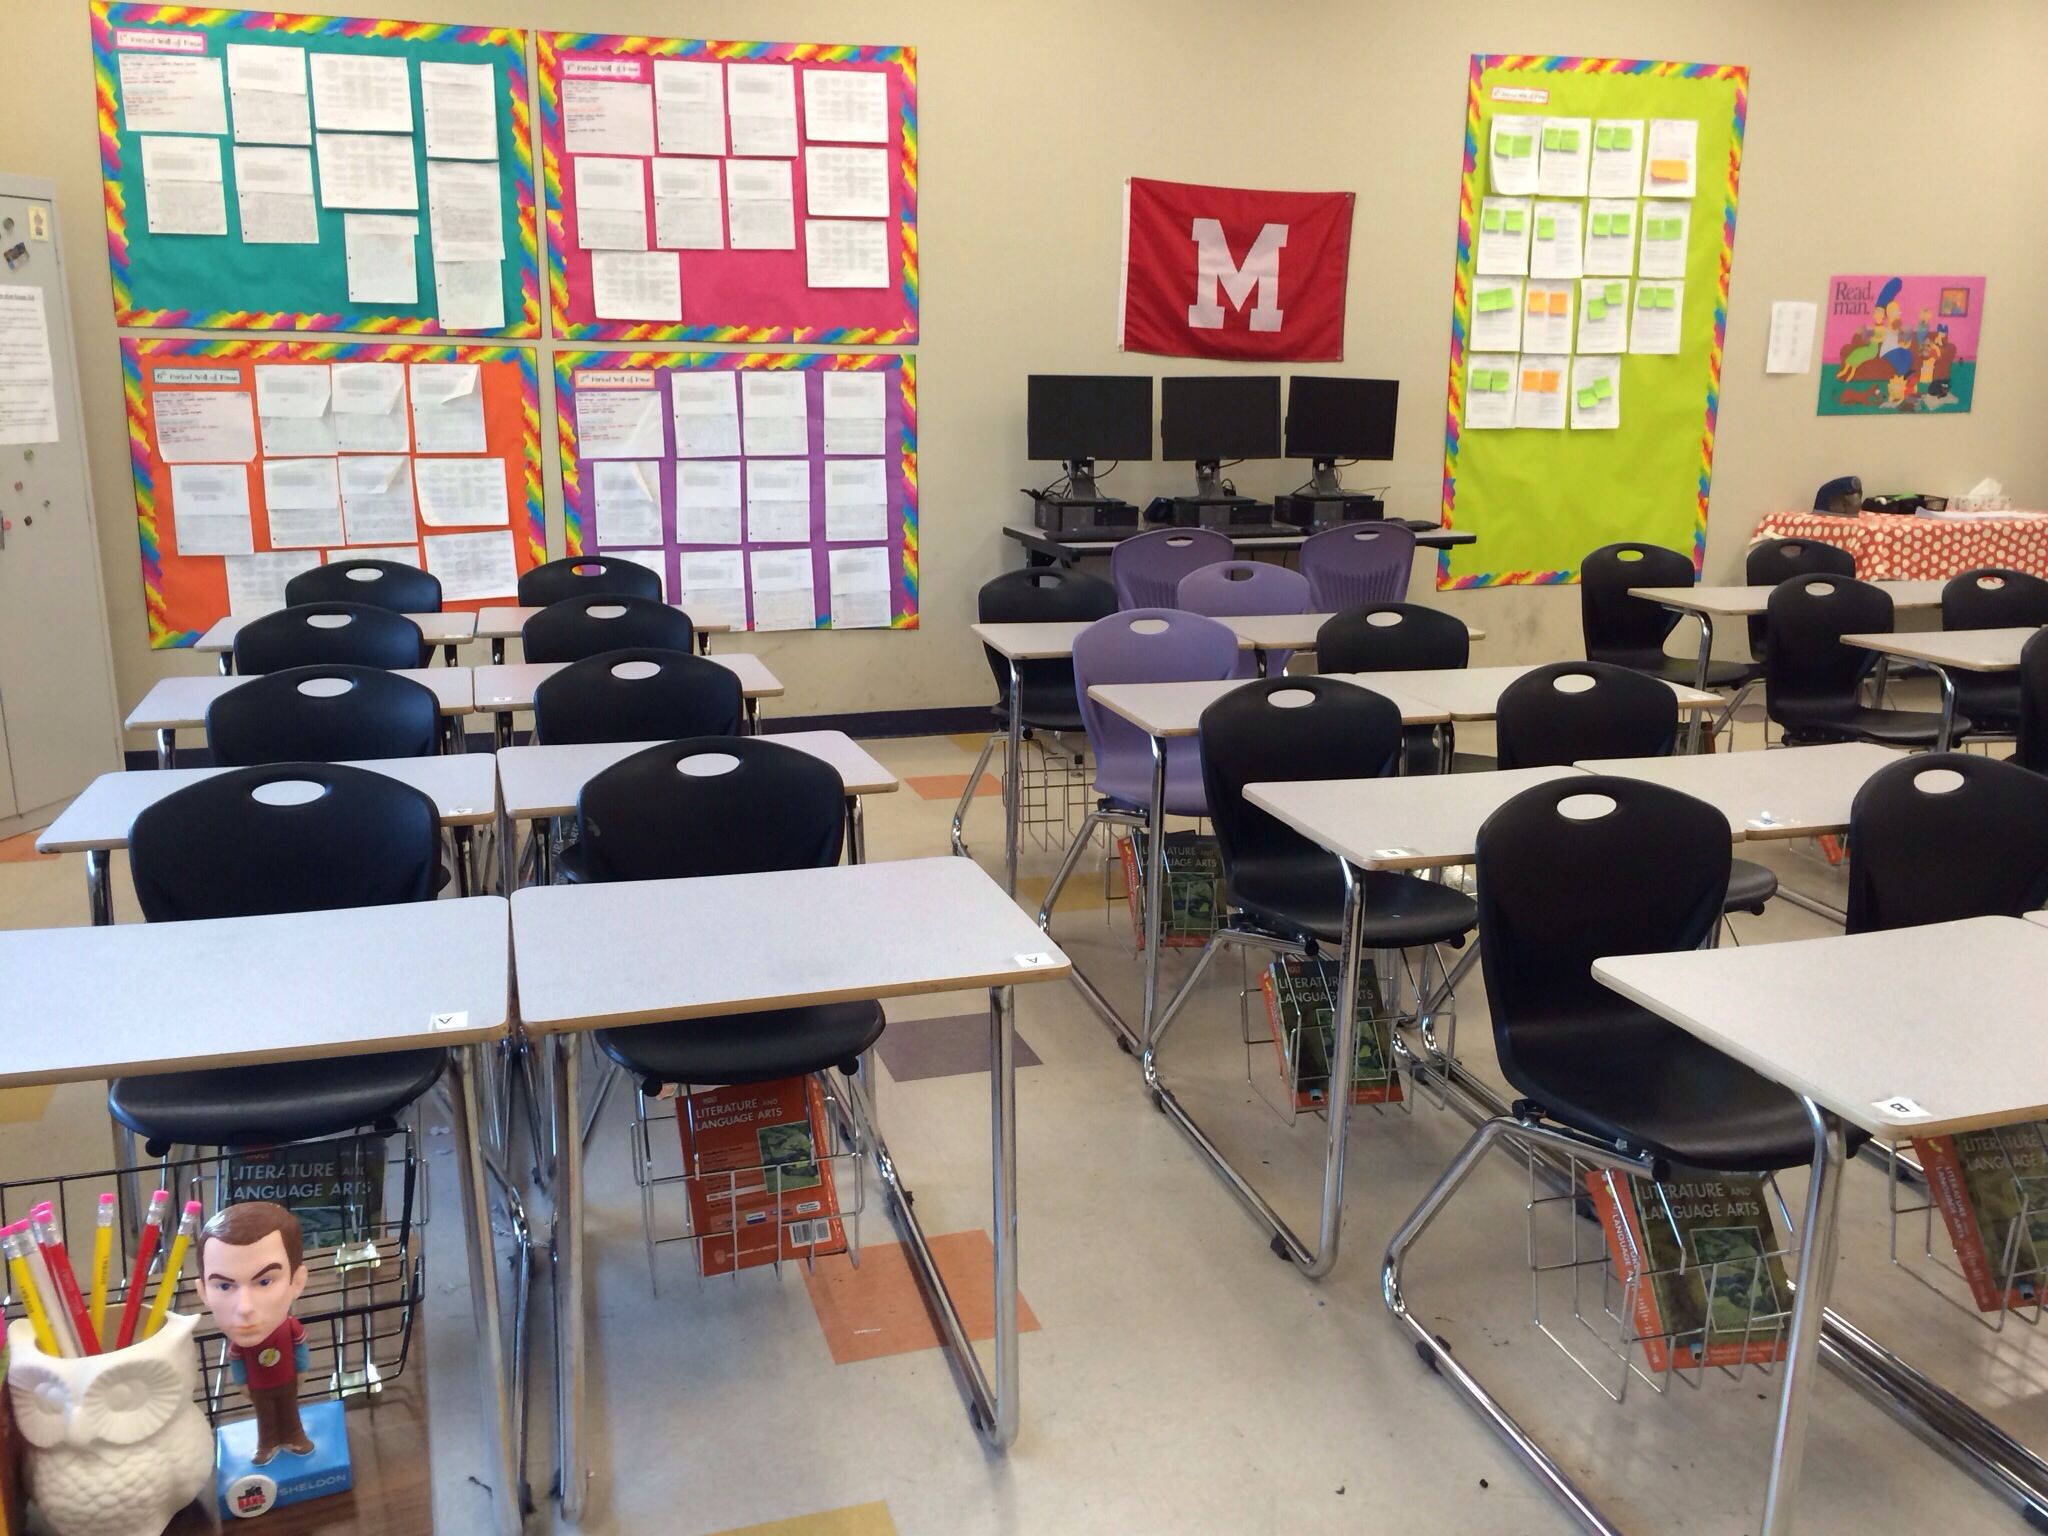 Classroom Ideas For High School ~ High school classroom organization arranging the desks